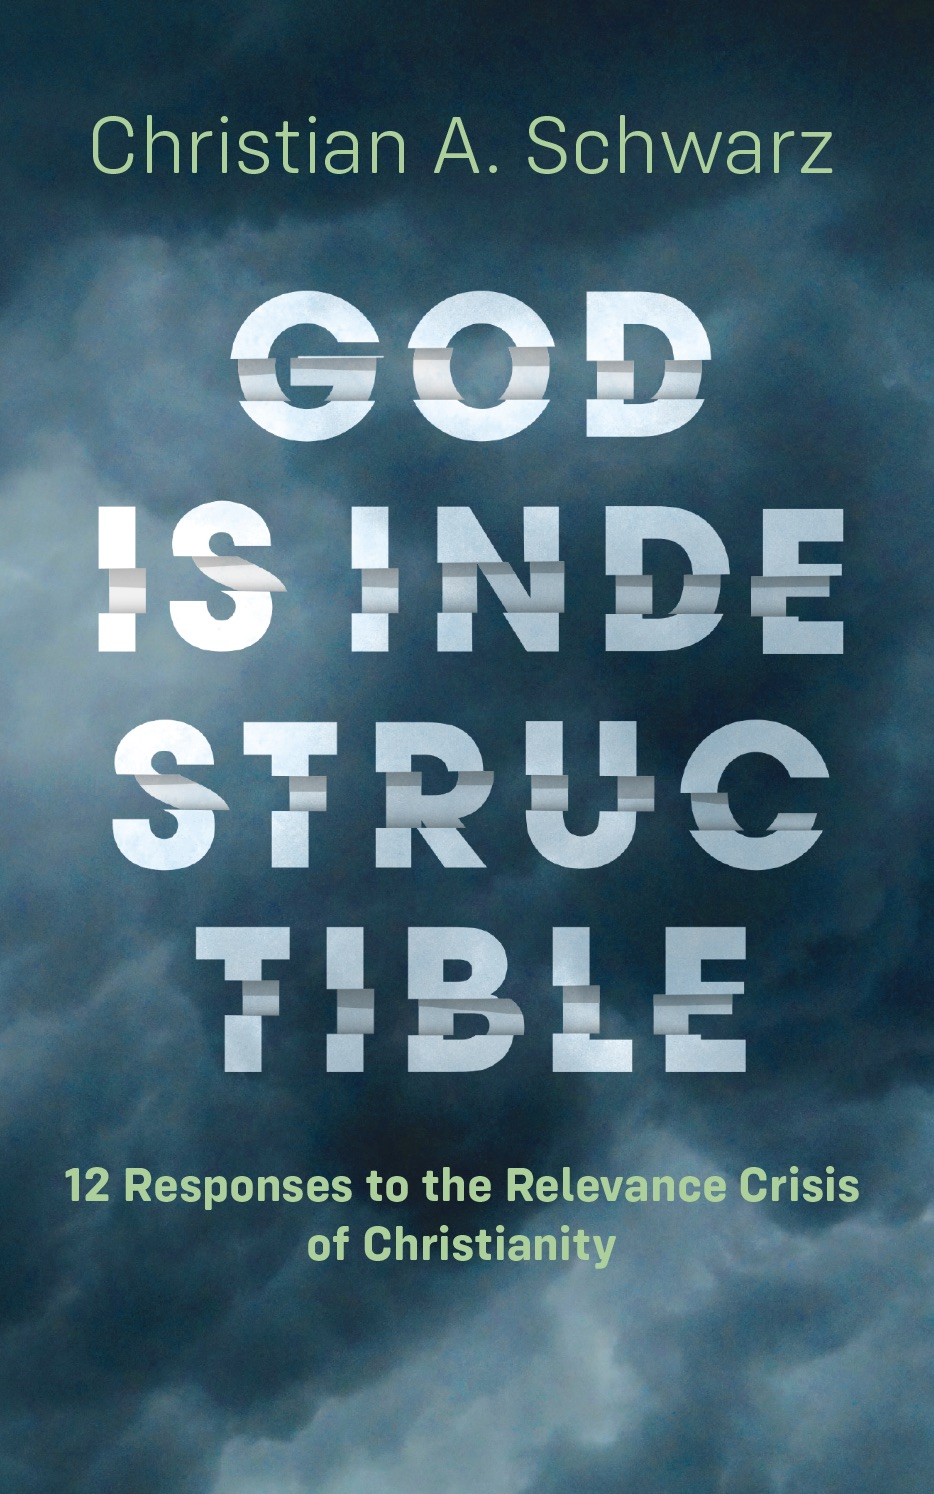 God is Indestructible